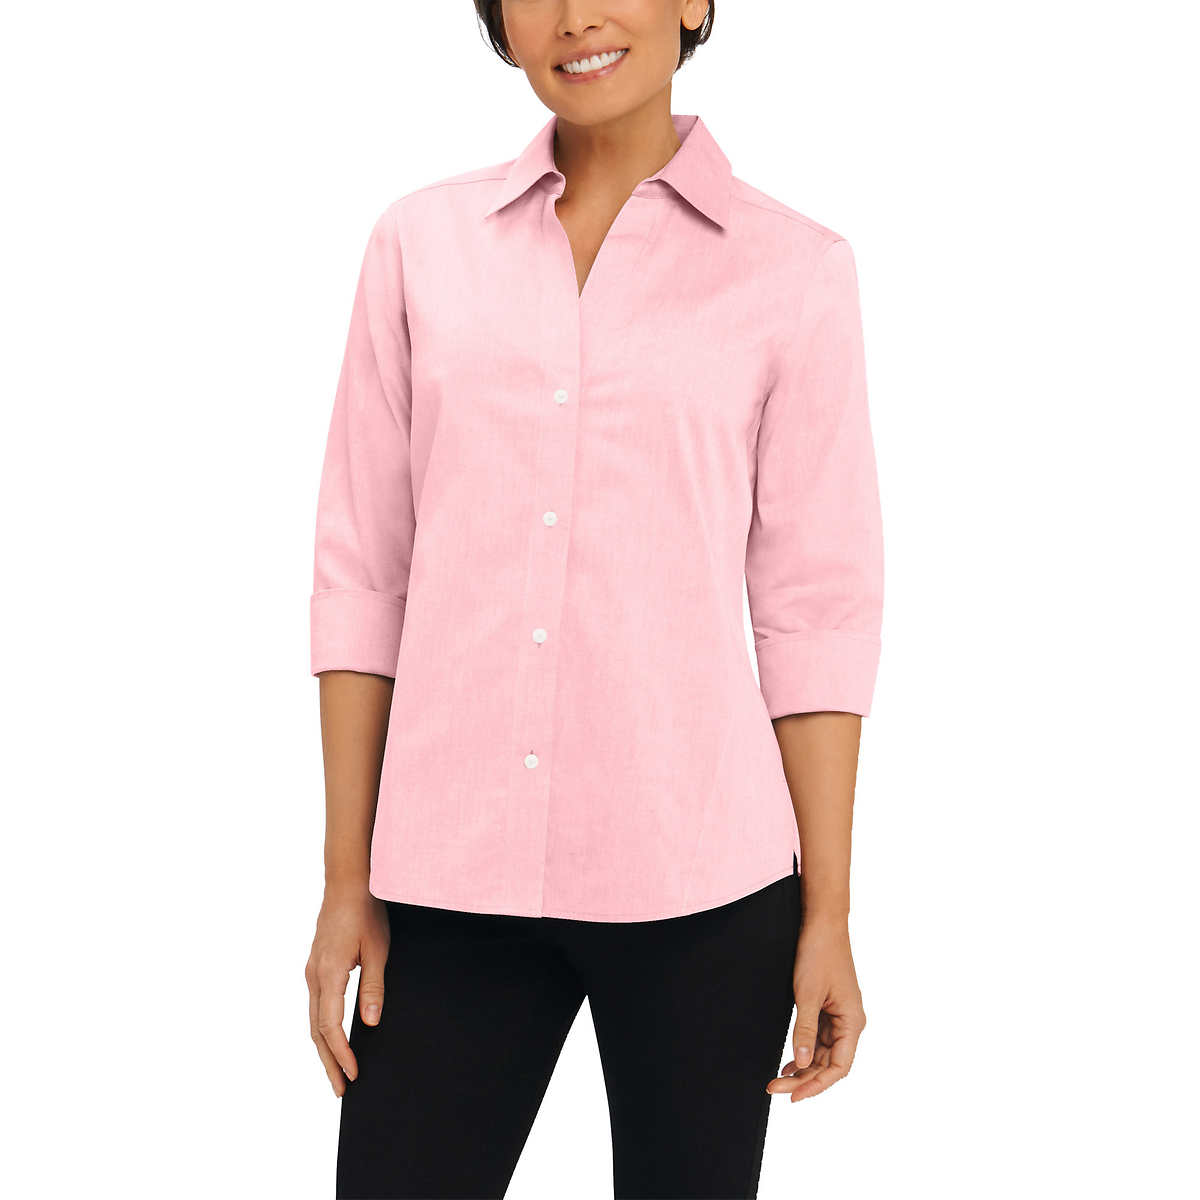 Foxcroft Women's Non-Iron Essential Paige Shirt For Women in Different Color and Sizes